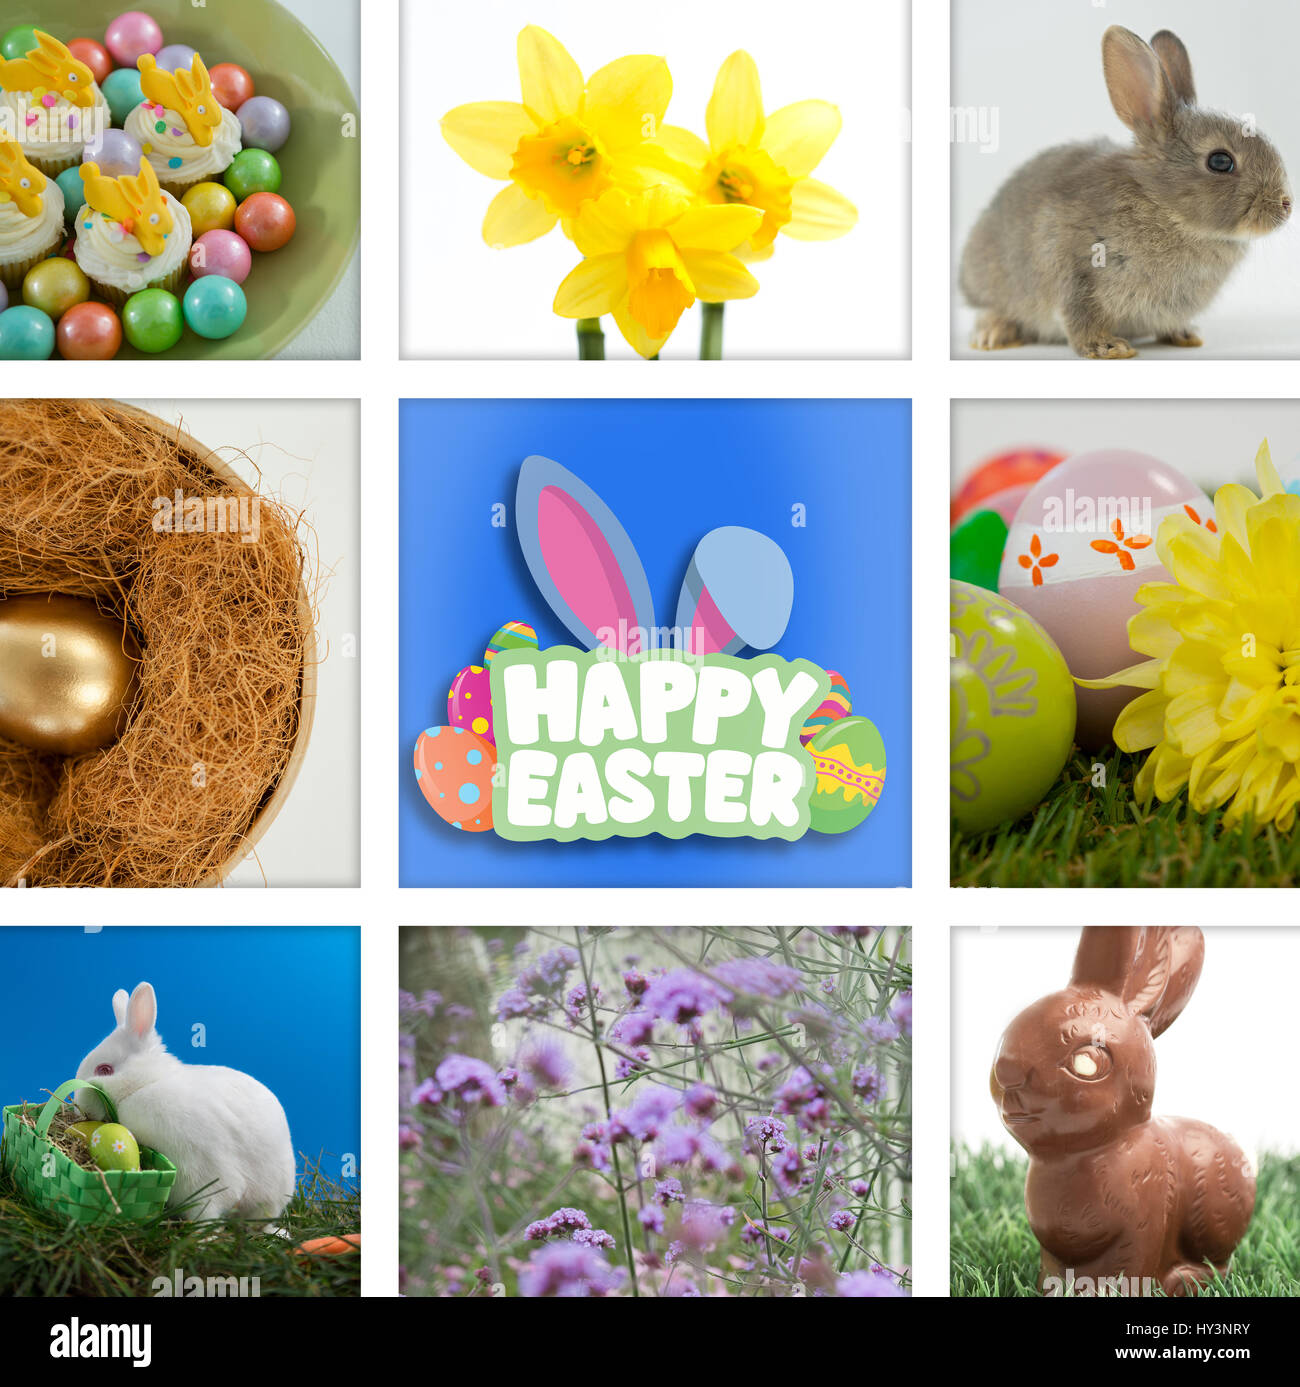 Happy Easter greeting against colorful chocolate easter eggs with cup cakes in bowl - Stock Image